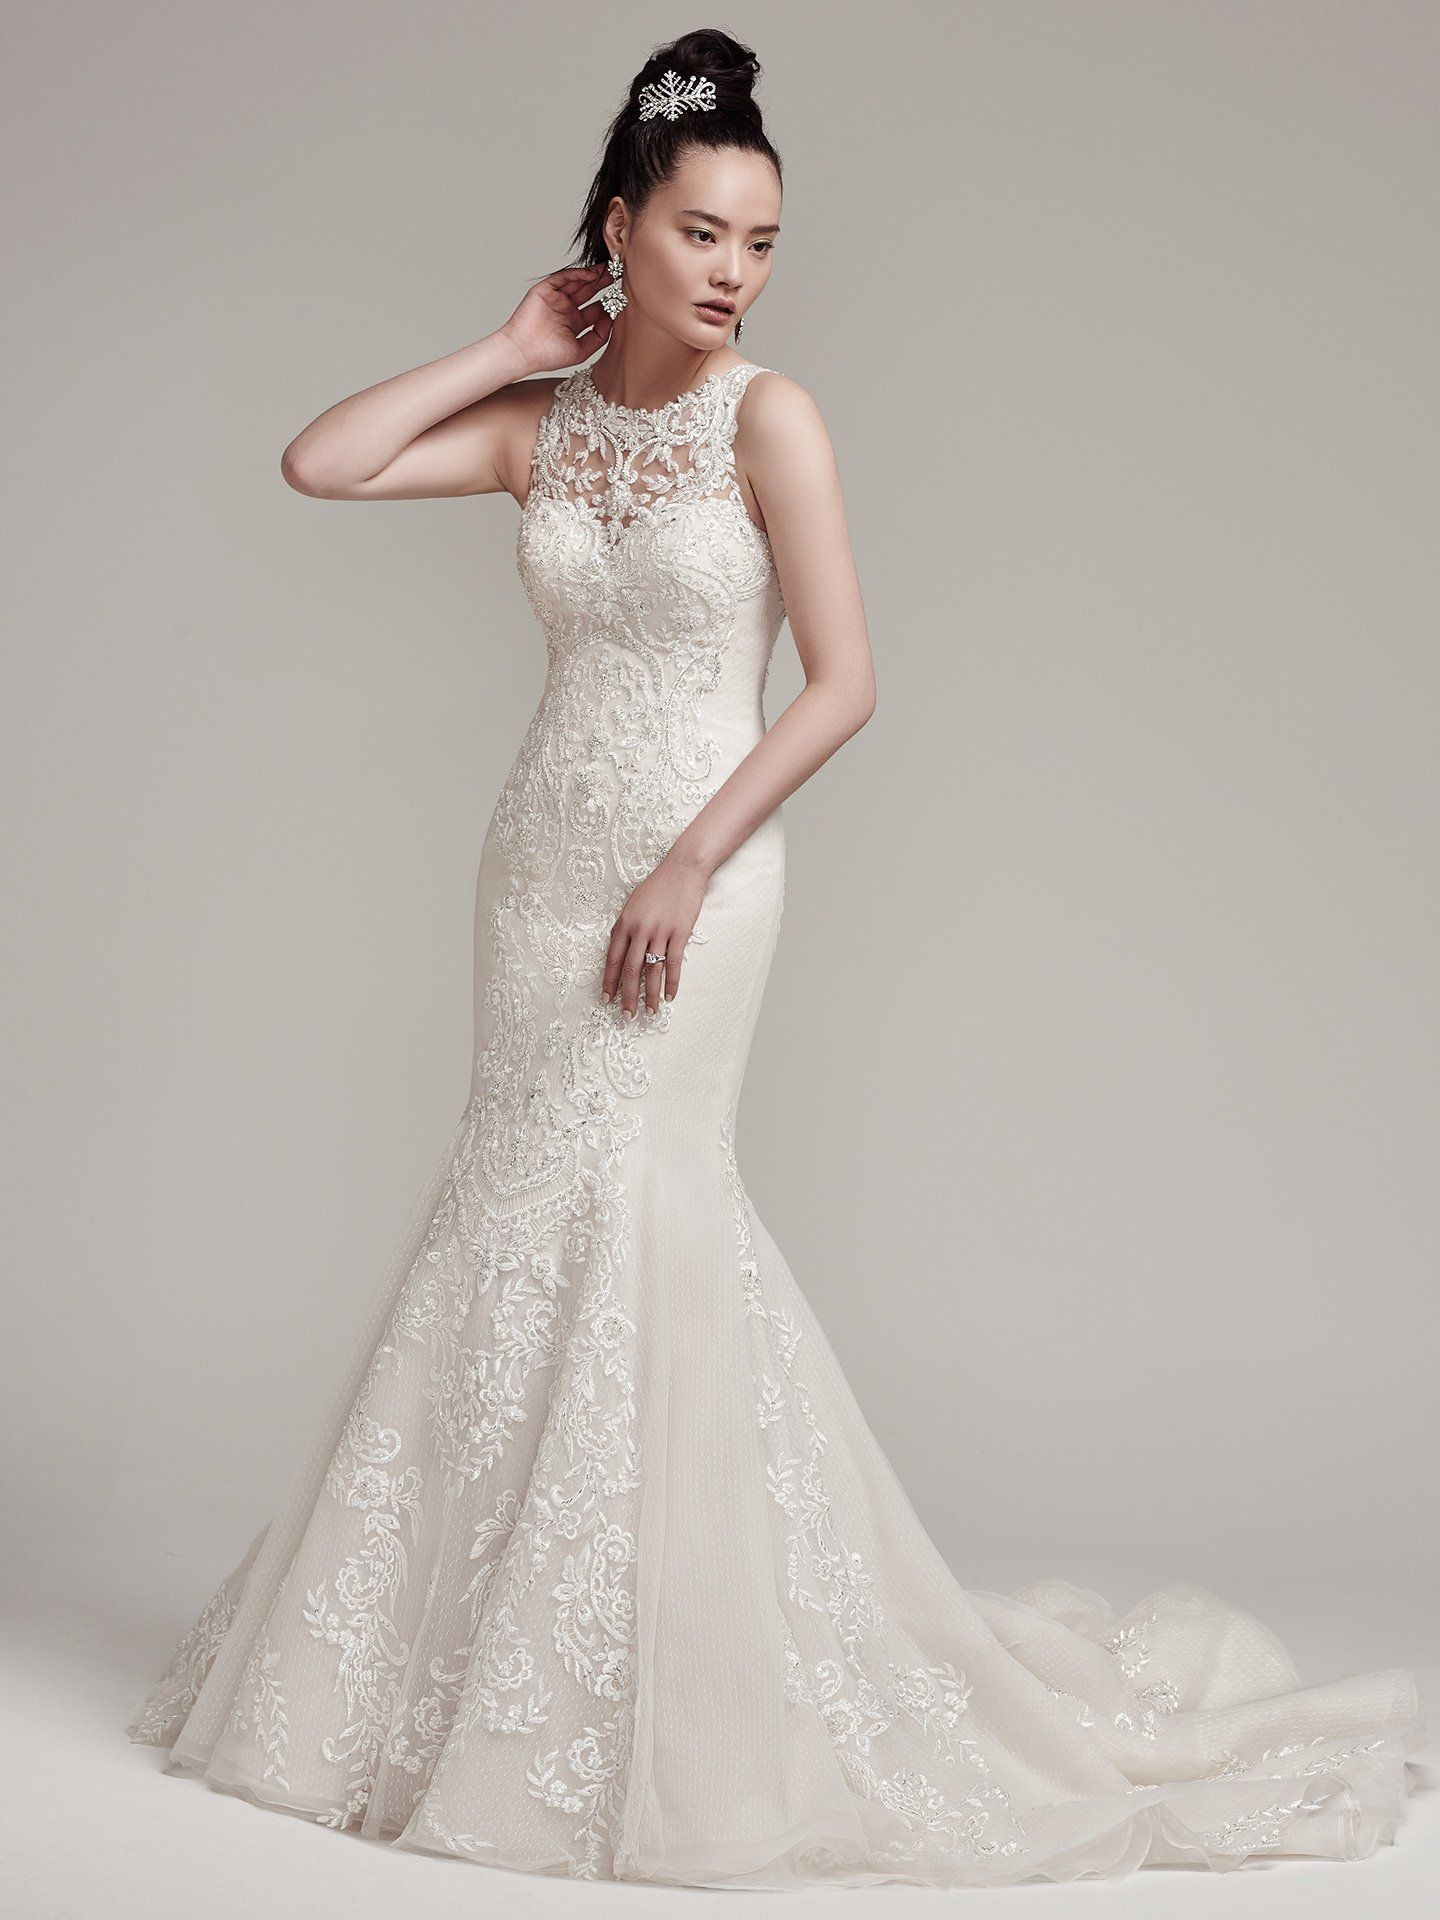 Sottero And Midgley Rae Sottero And Midgley Wedding Gowns Bridal Gowns Available At The Perfect Dress Sarasota Fl F Sottero Midgley Wedding Dresses Wedding Dresses Wedding Gown Gallery